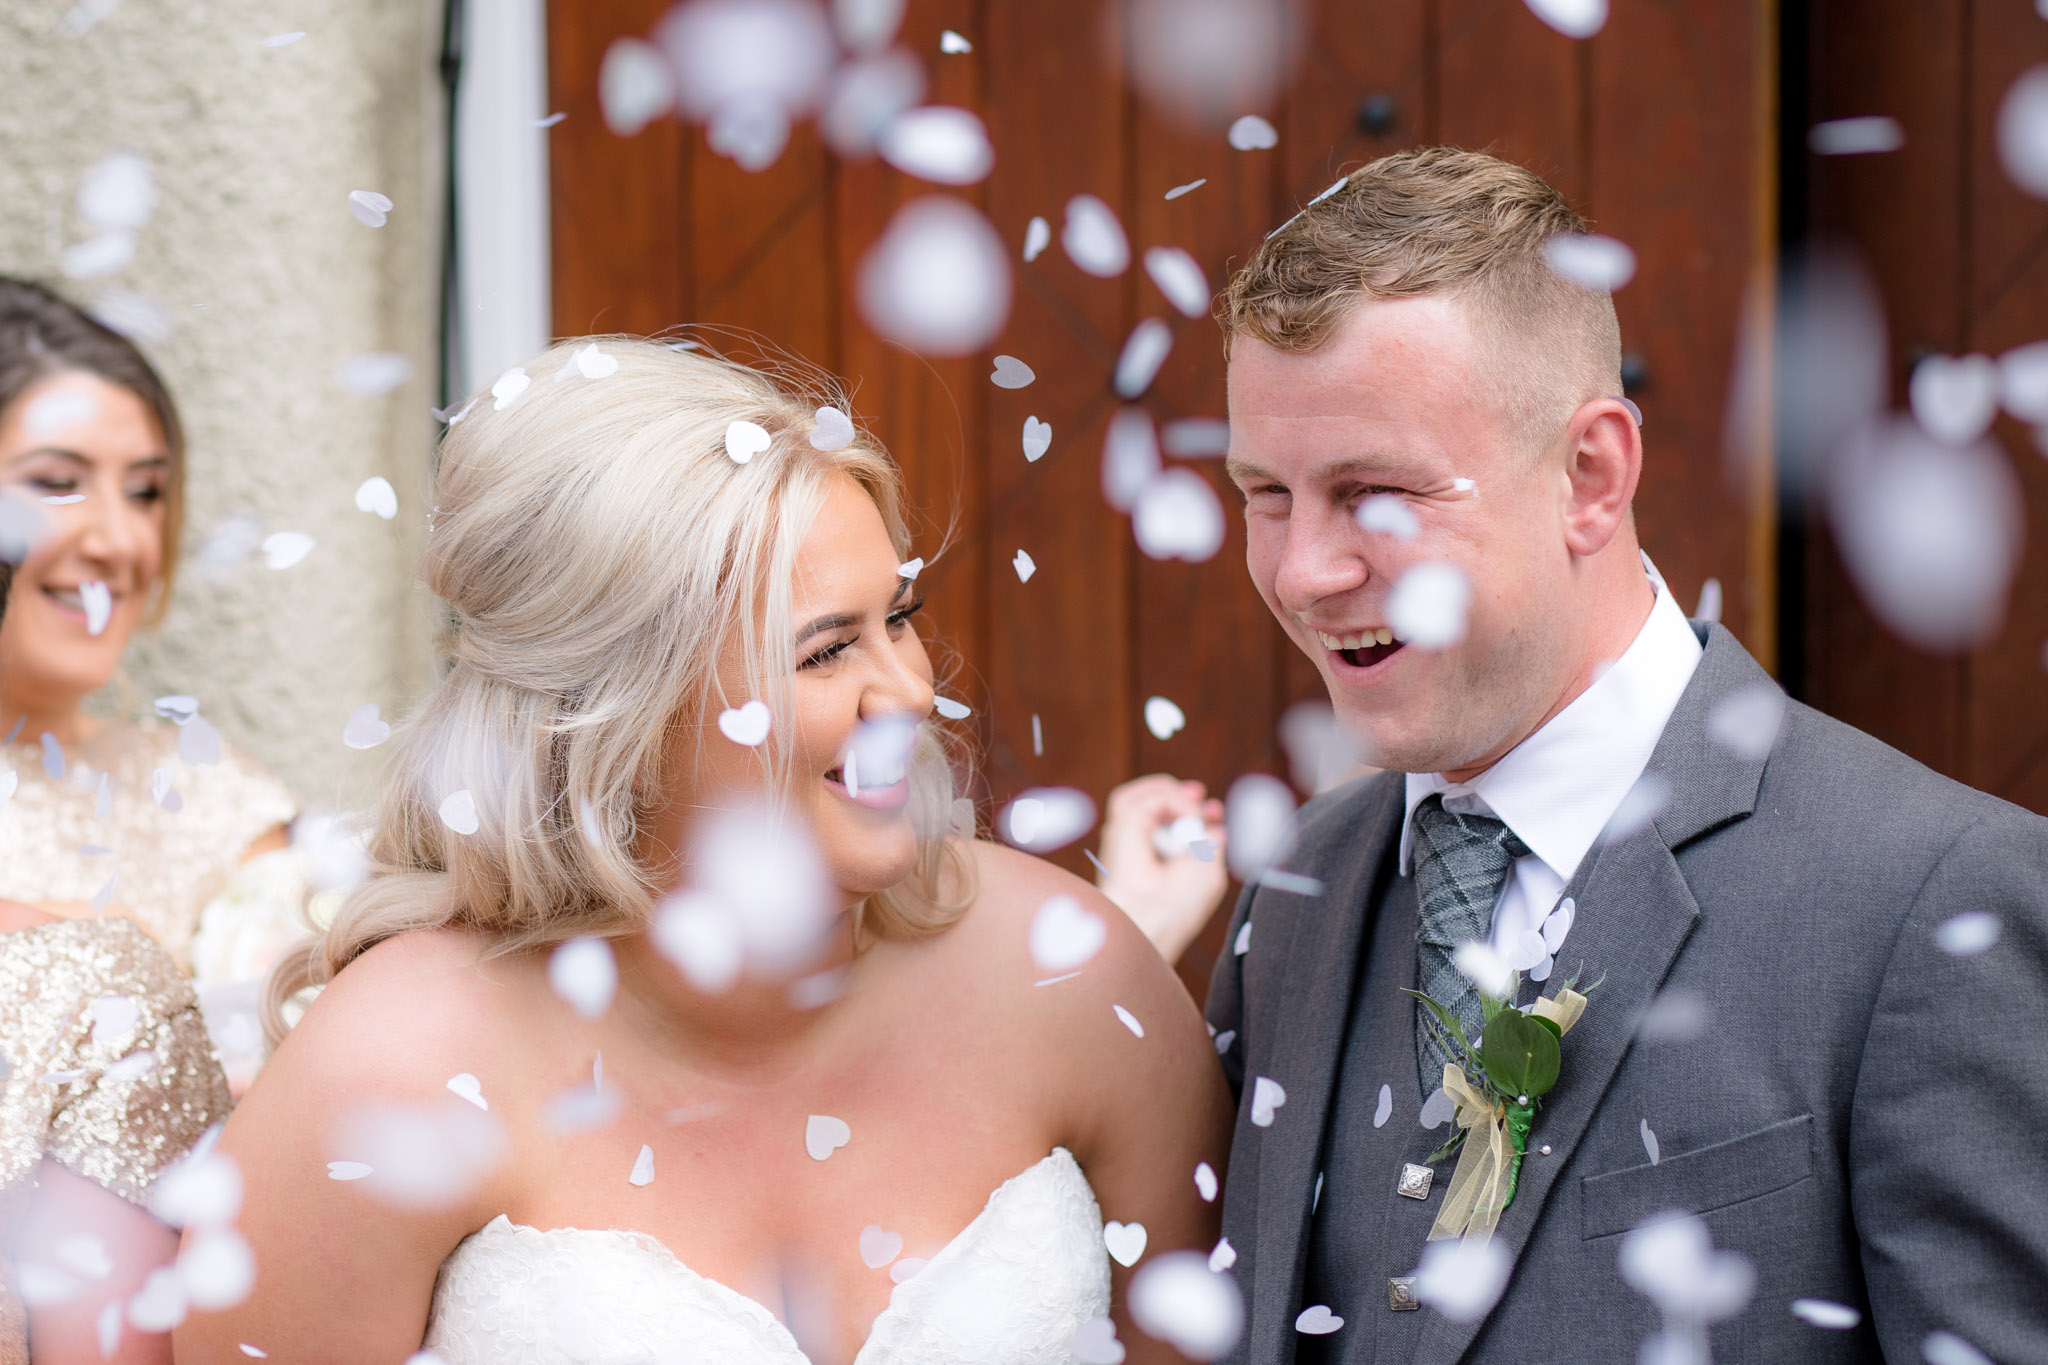 Confetti over bride and groom - Wedding photographer aberdeenshire, aberdeen, huntly, scotland - Debbie Dee Photography